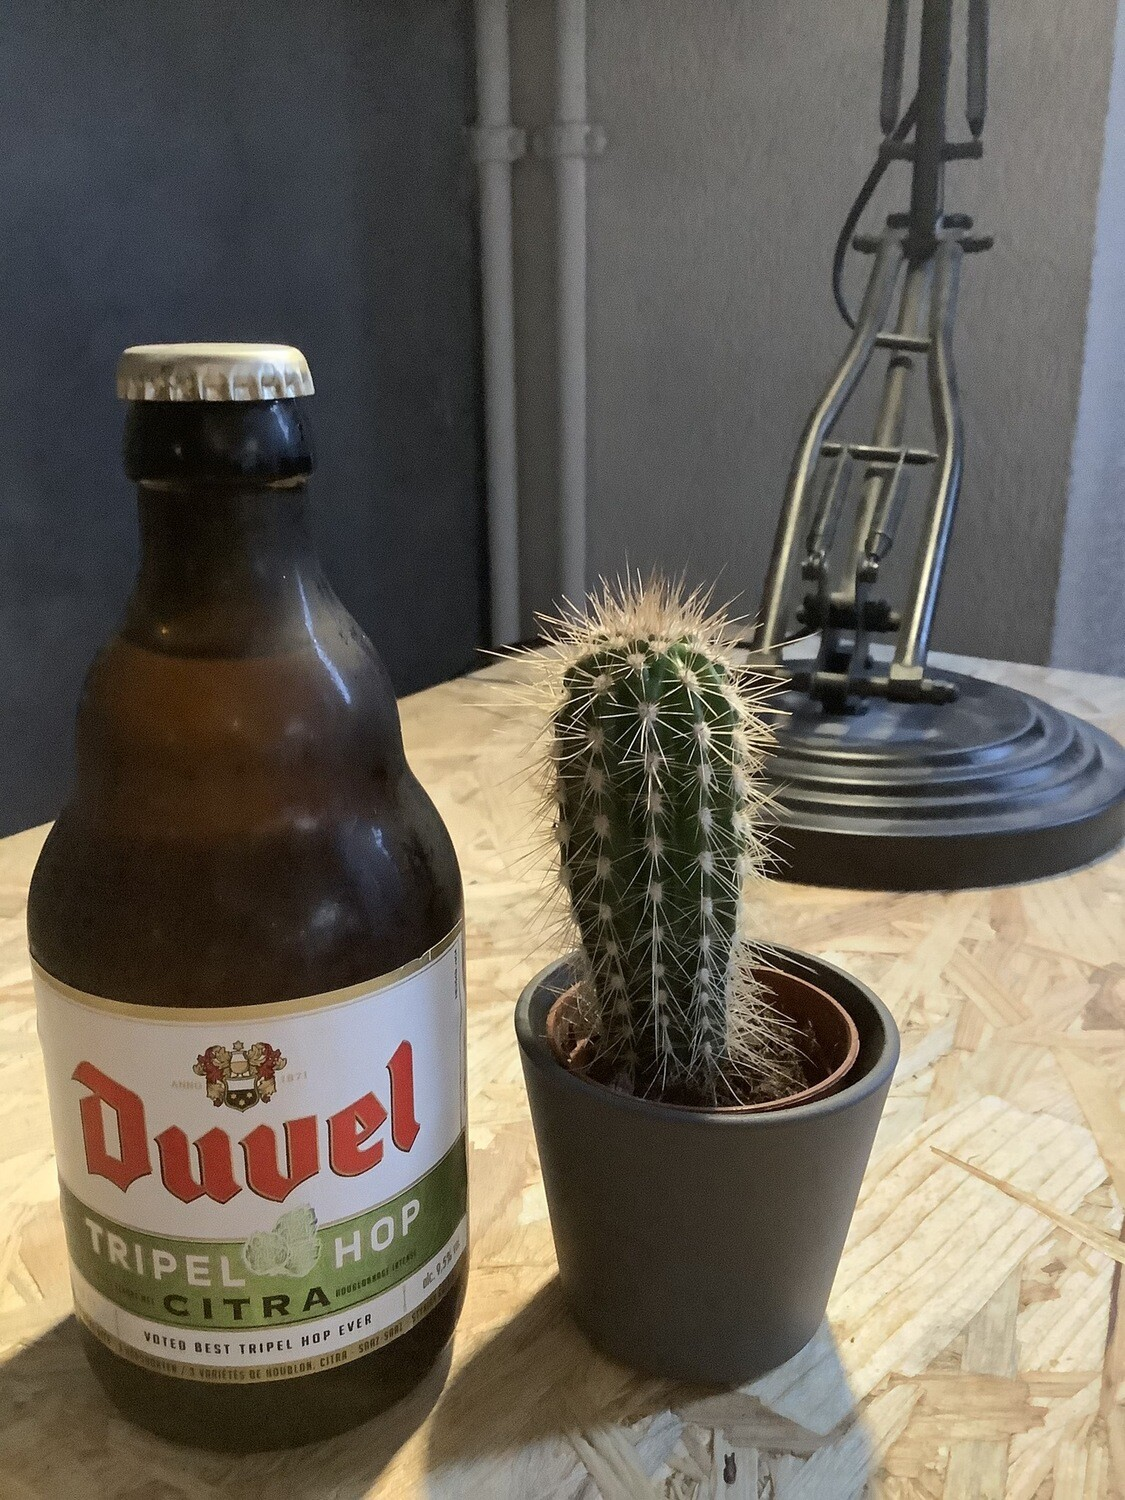 Duvel Moortgat - Tripel Hop Citra - 9,5% - 33cl